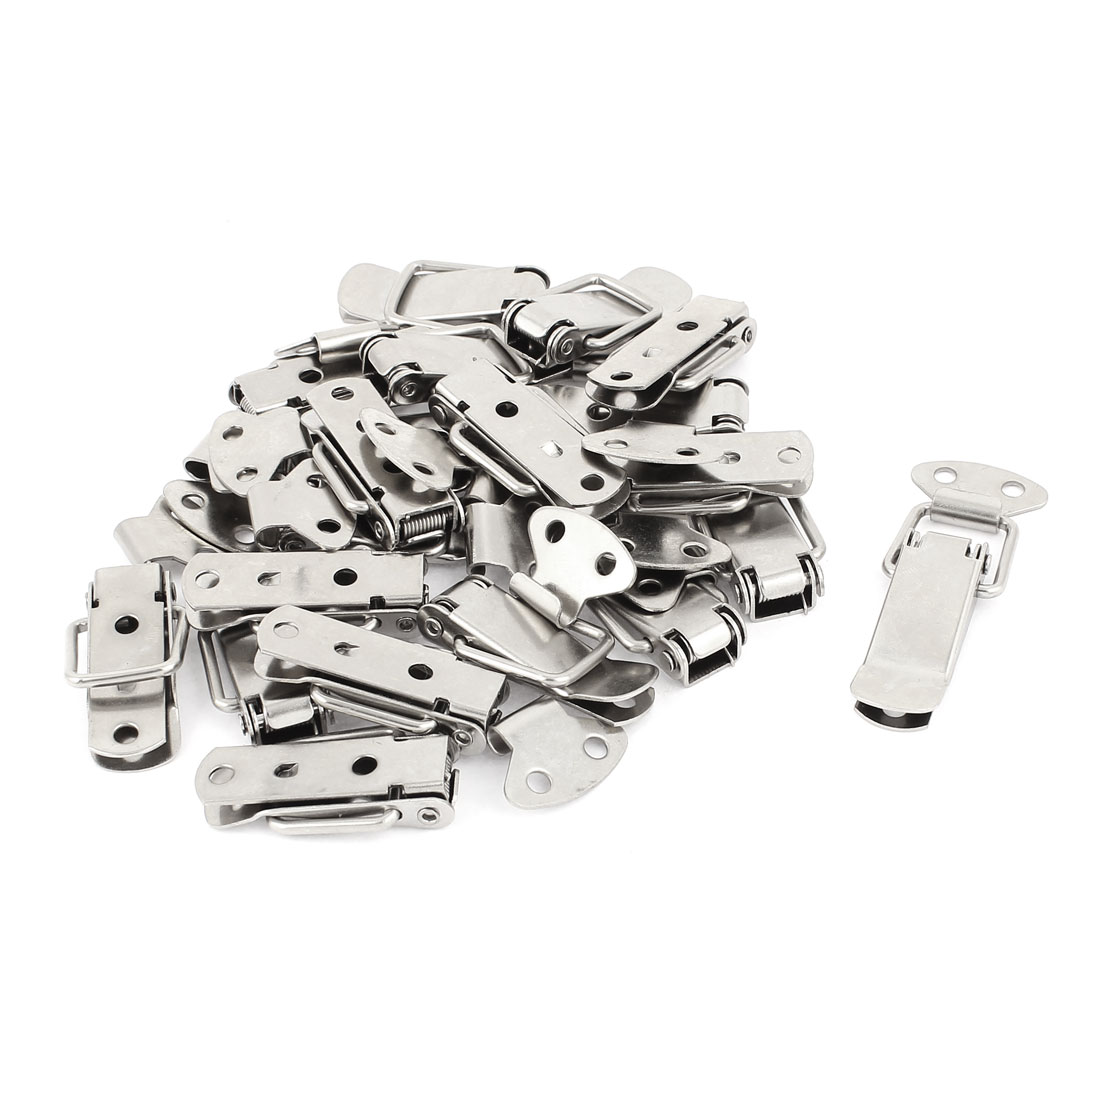 20pcs 56mm Long Spring Loaded Toggle Draw Latch Catch Set for Cases Boxes Chests